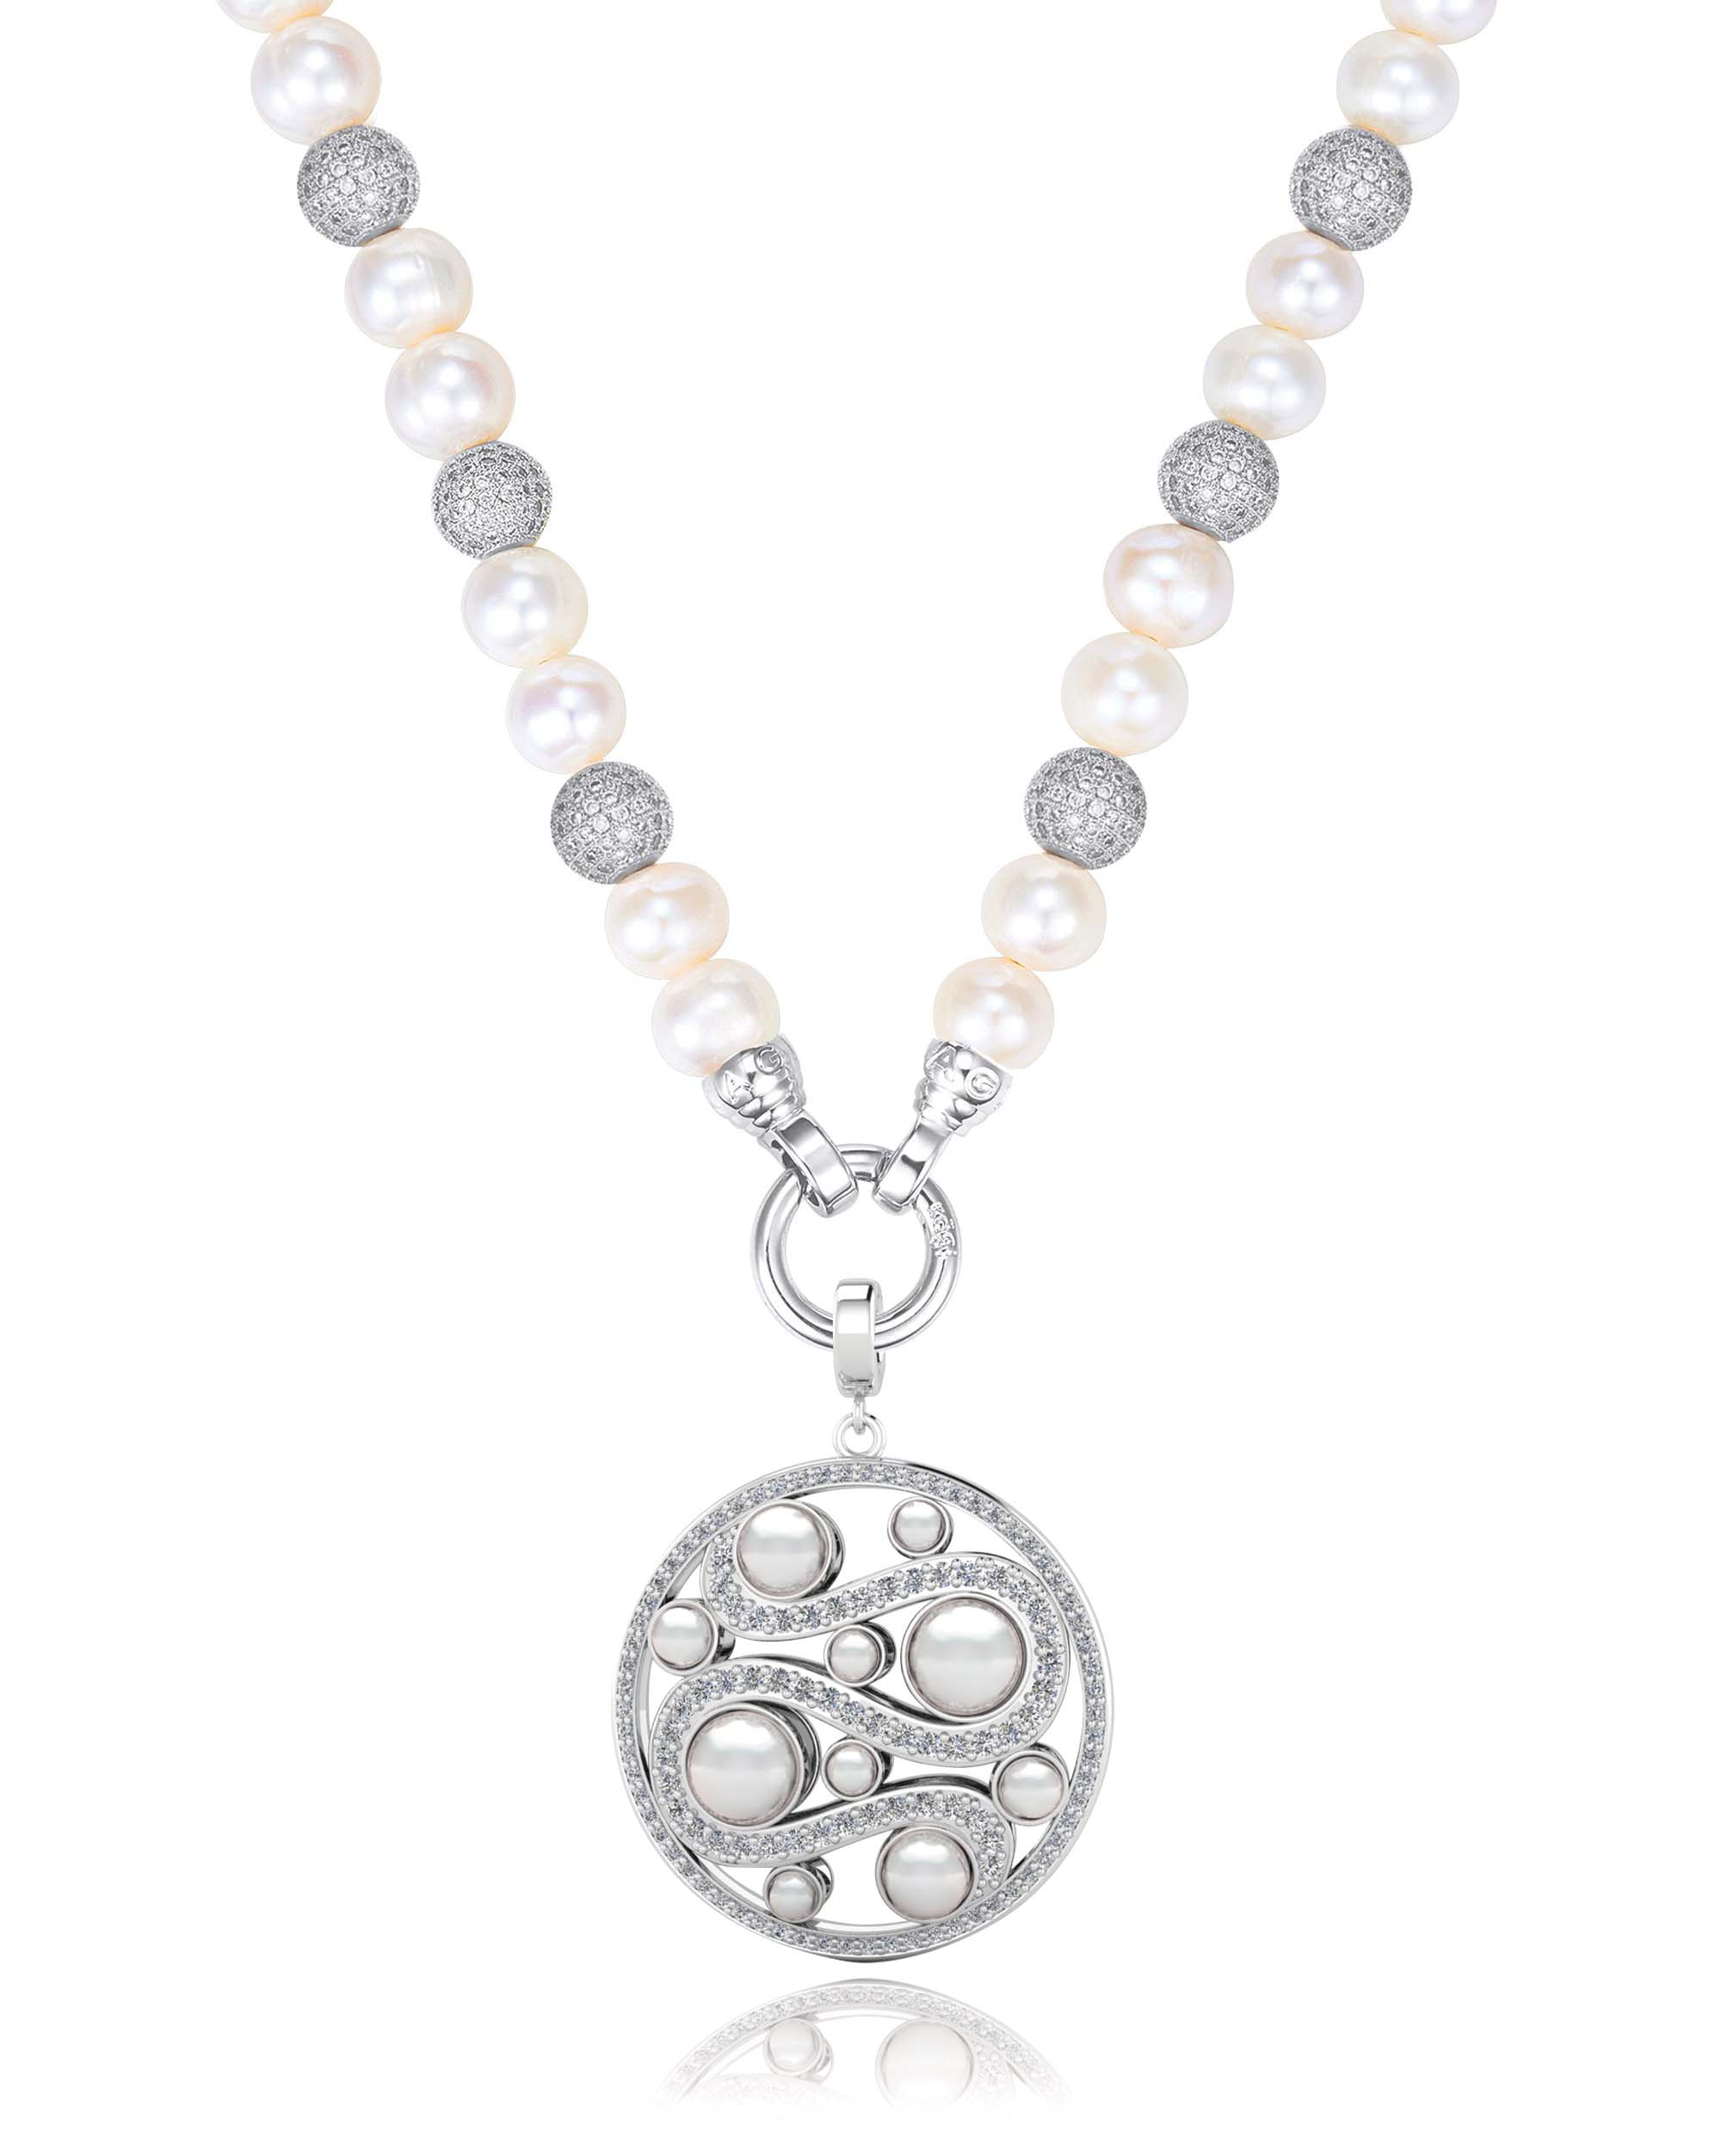 Kagi Pearl Luxe Necklace $249 with Mystic Pearl Pendant $249 www.kagi.net